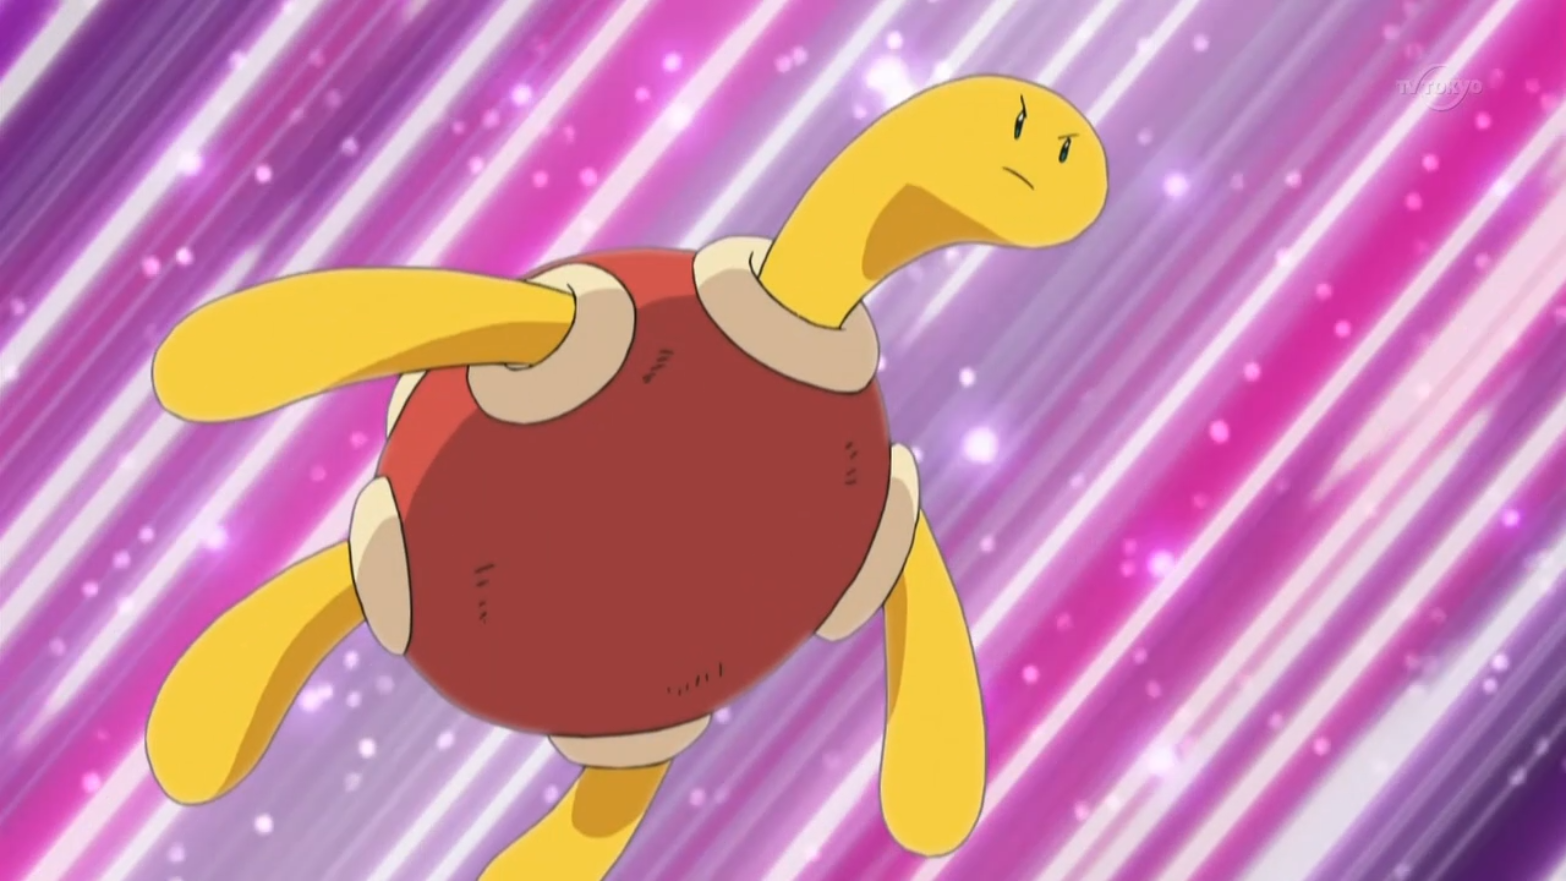 Rebbeca used her Shuckle to battle Zoey's Glameow in the Brussel Town's contest finals.